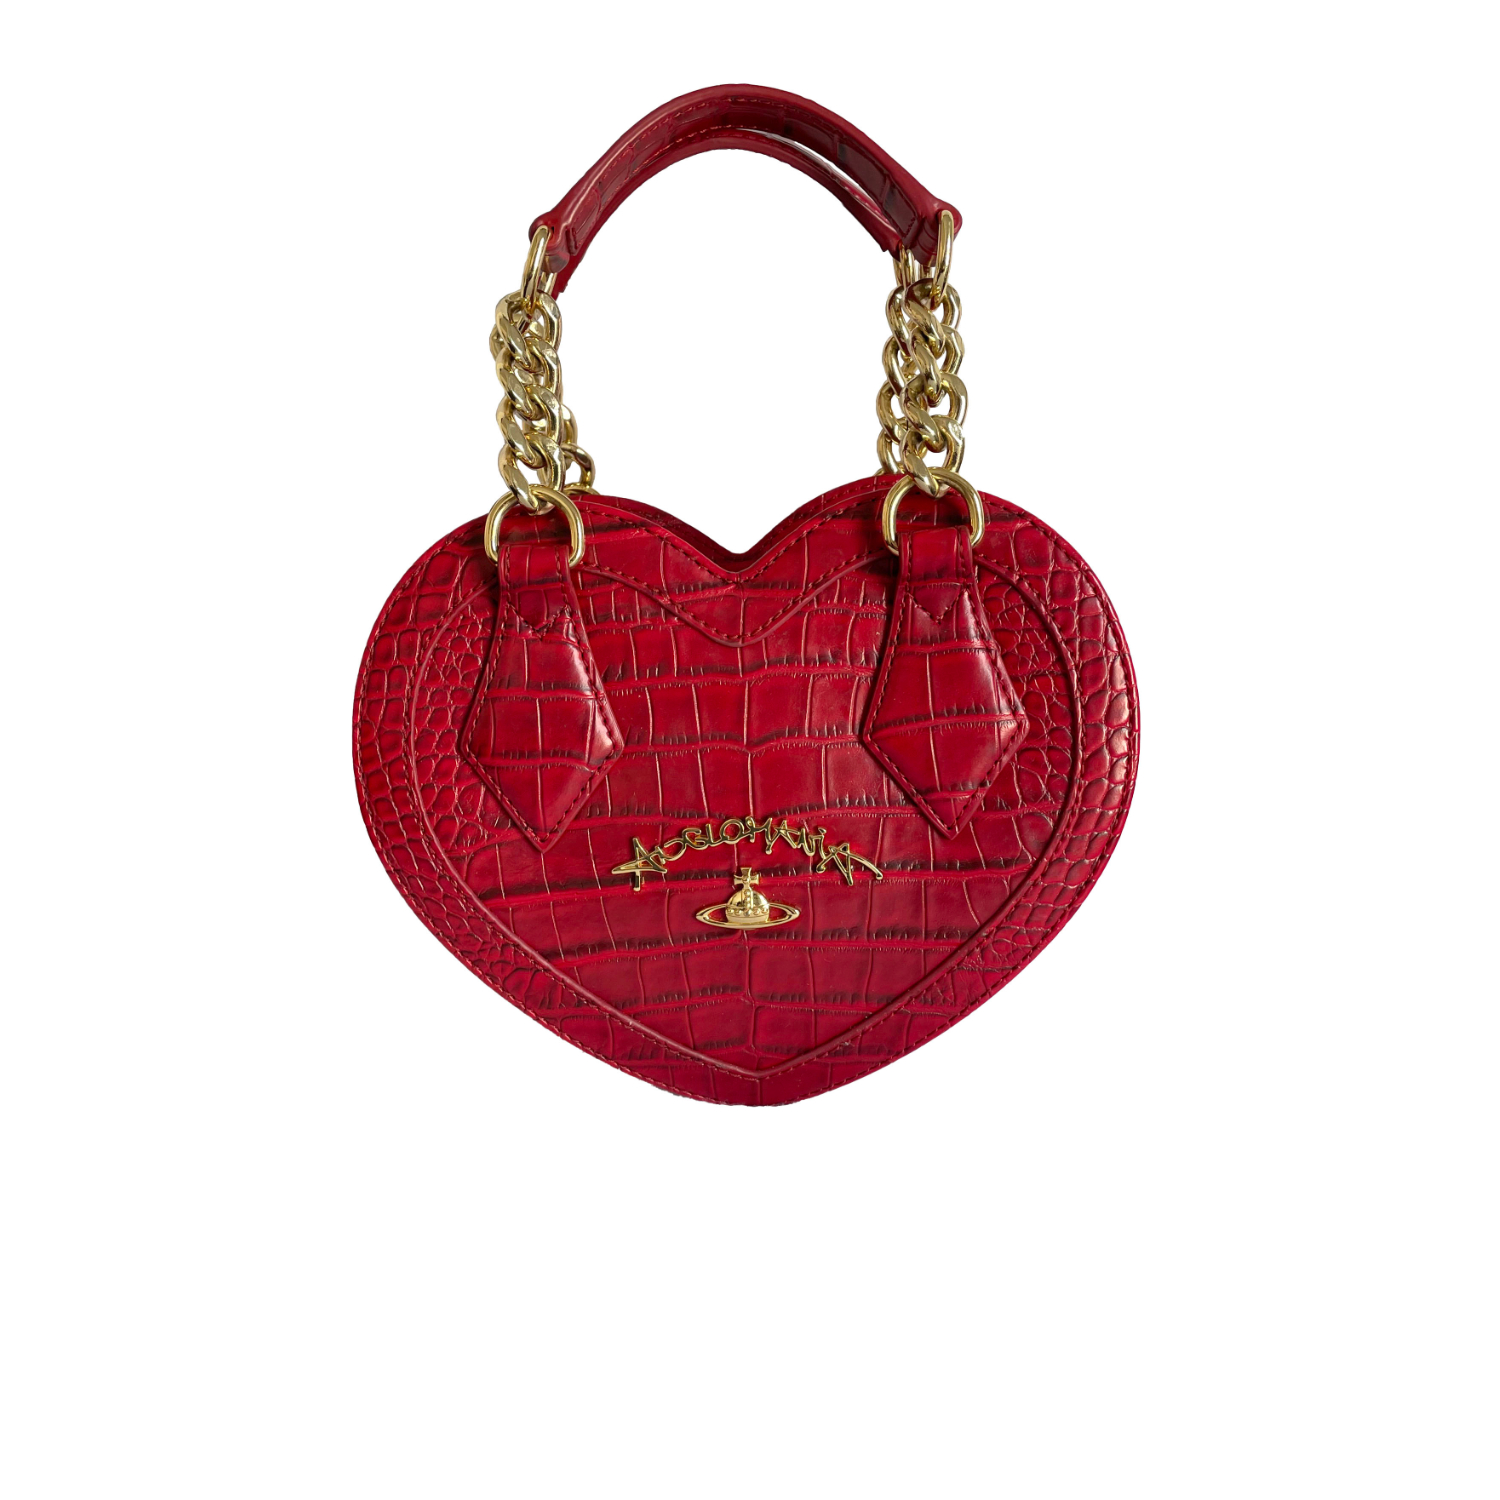 Vivienne Westwood Anglomania Heart Bag in Red   NITRYL